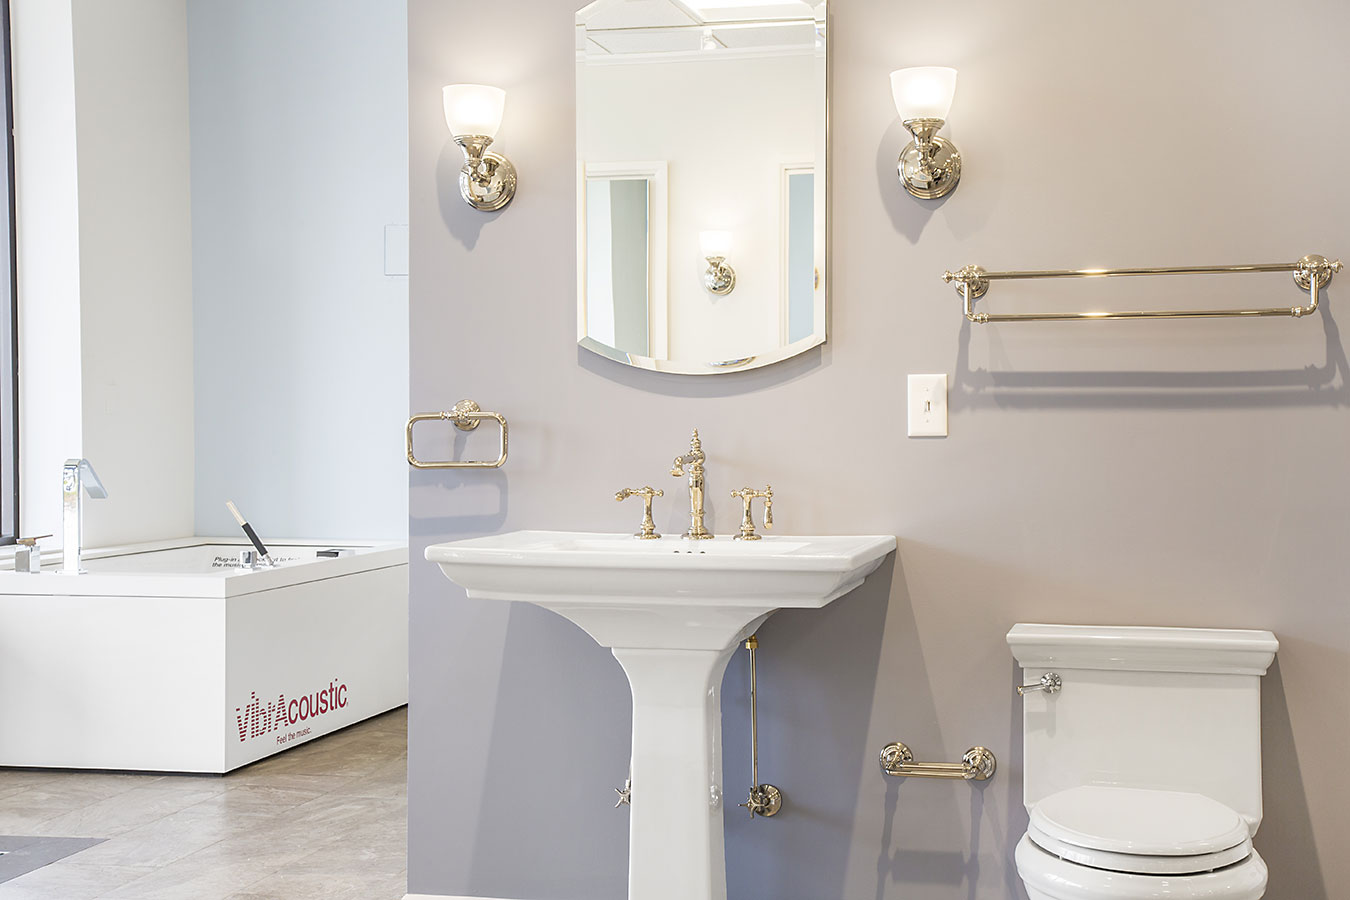 Showroom Gallery. The Inspired Bath